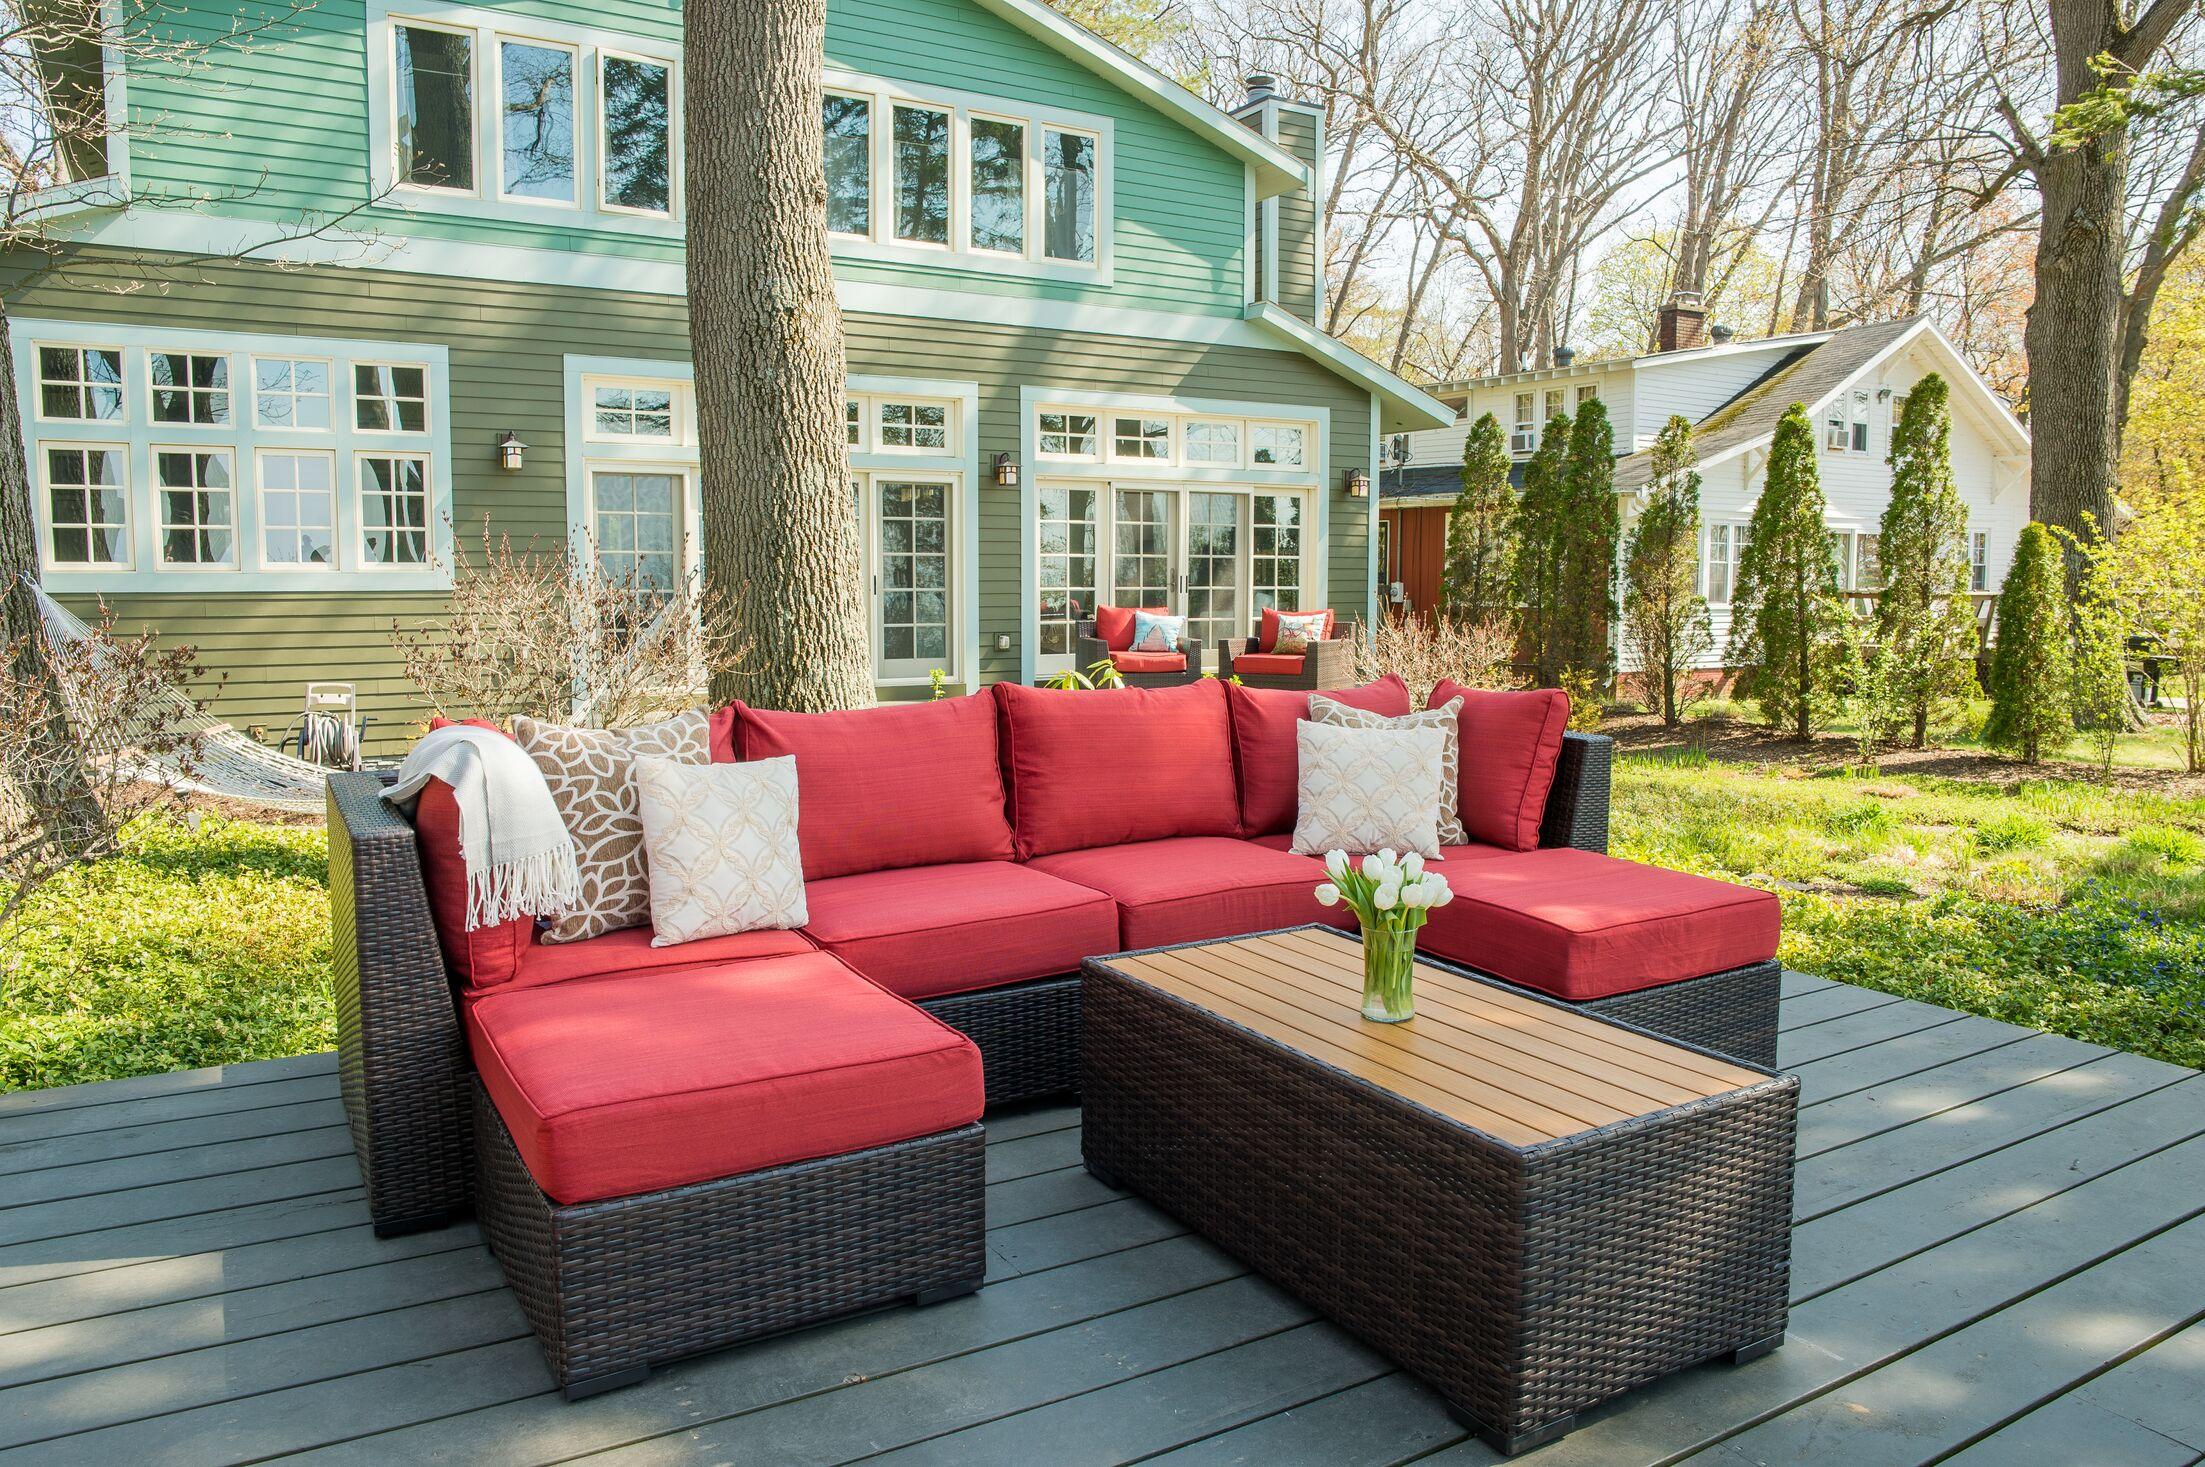 Darden 7 Piece Rattan Sectional Seating Group with Cushions Cushion Color: Sangria